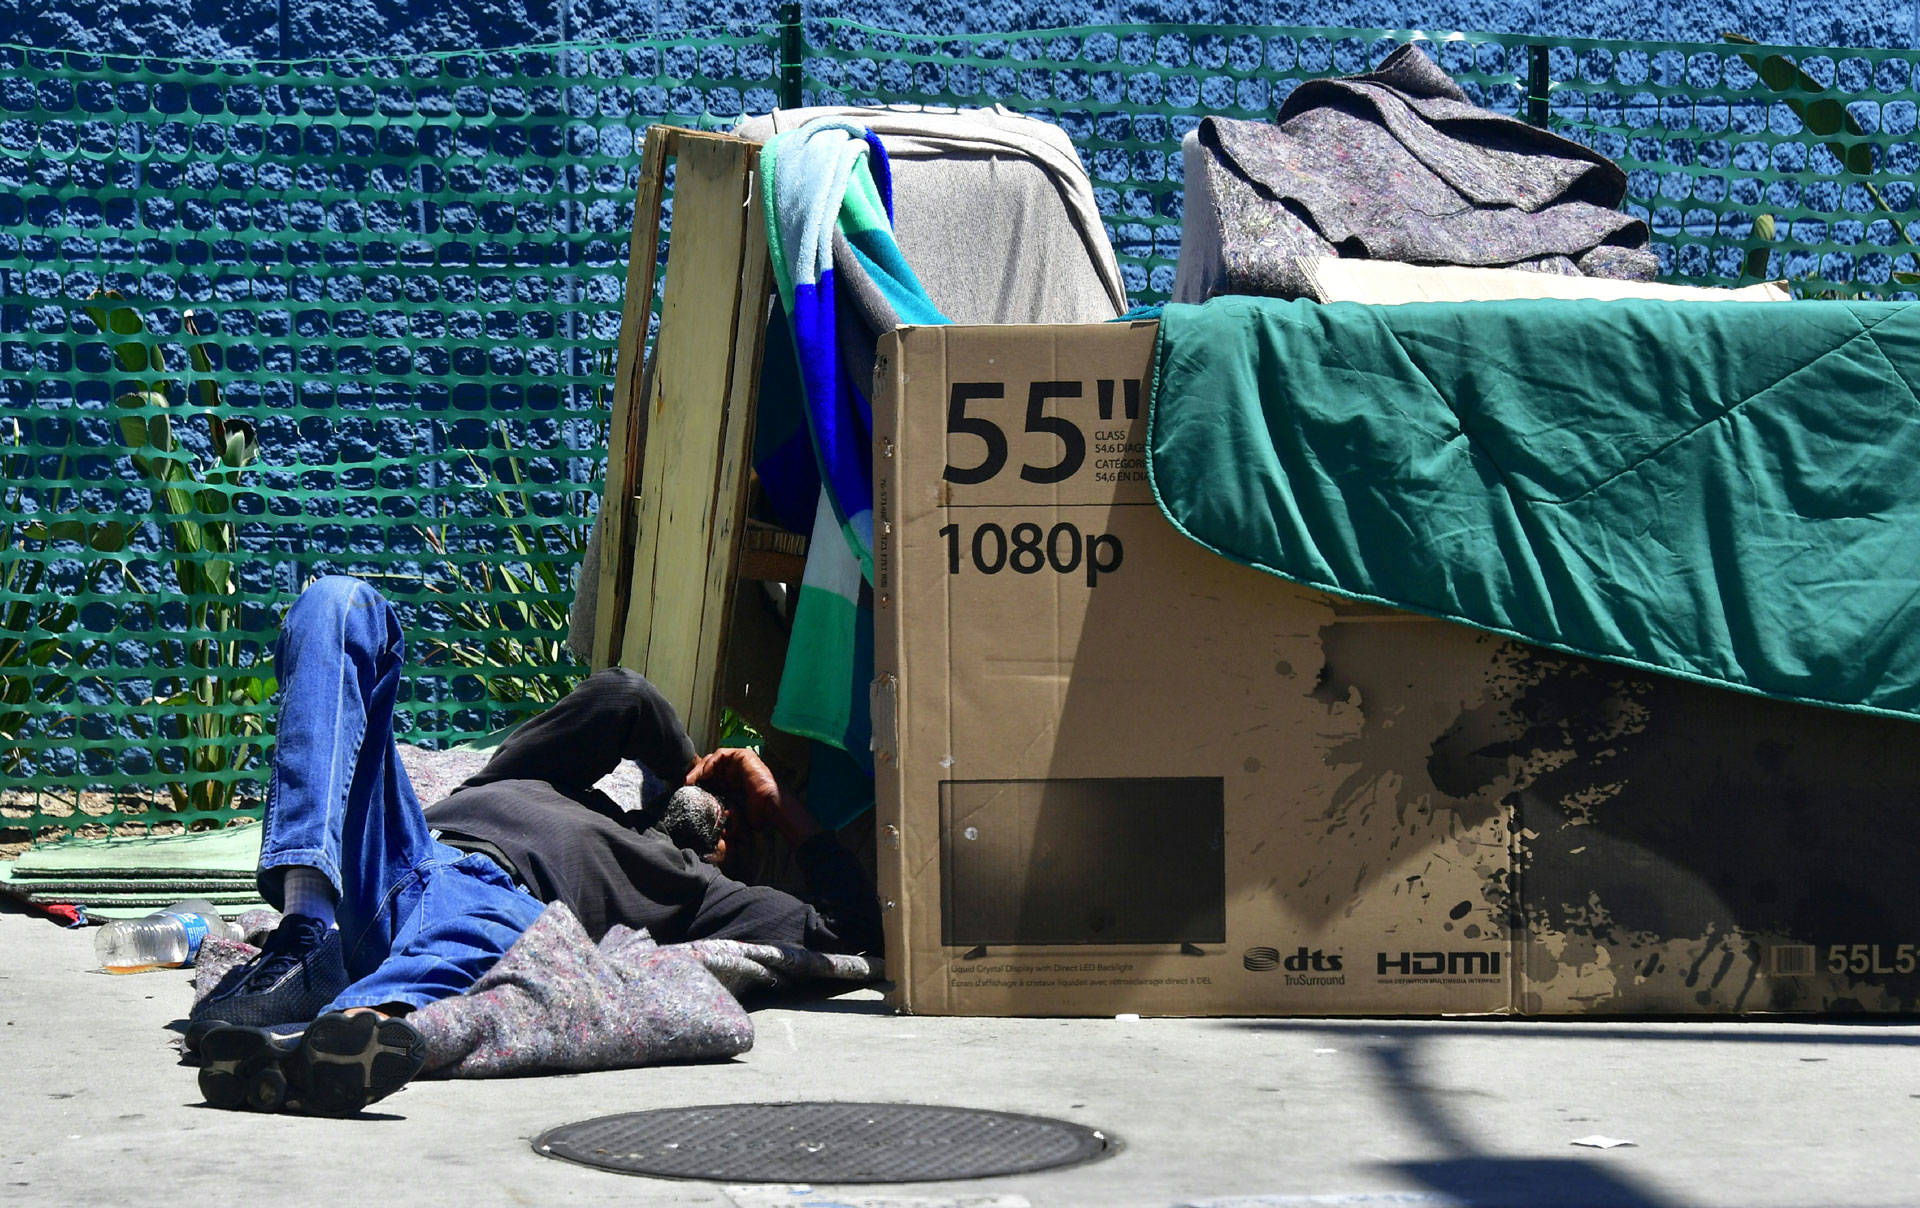 A homeless man sleeps beside his makeshift temporary shelter on a street in downtown Los Angeles on June 25, 2018. FREDERIC J. BROWN/AFP/Getty Images